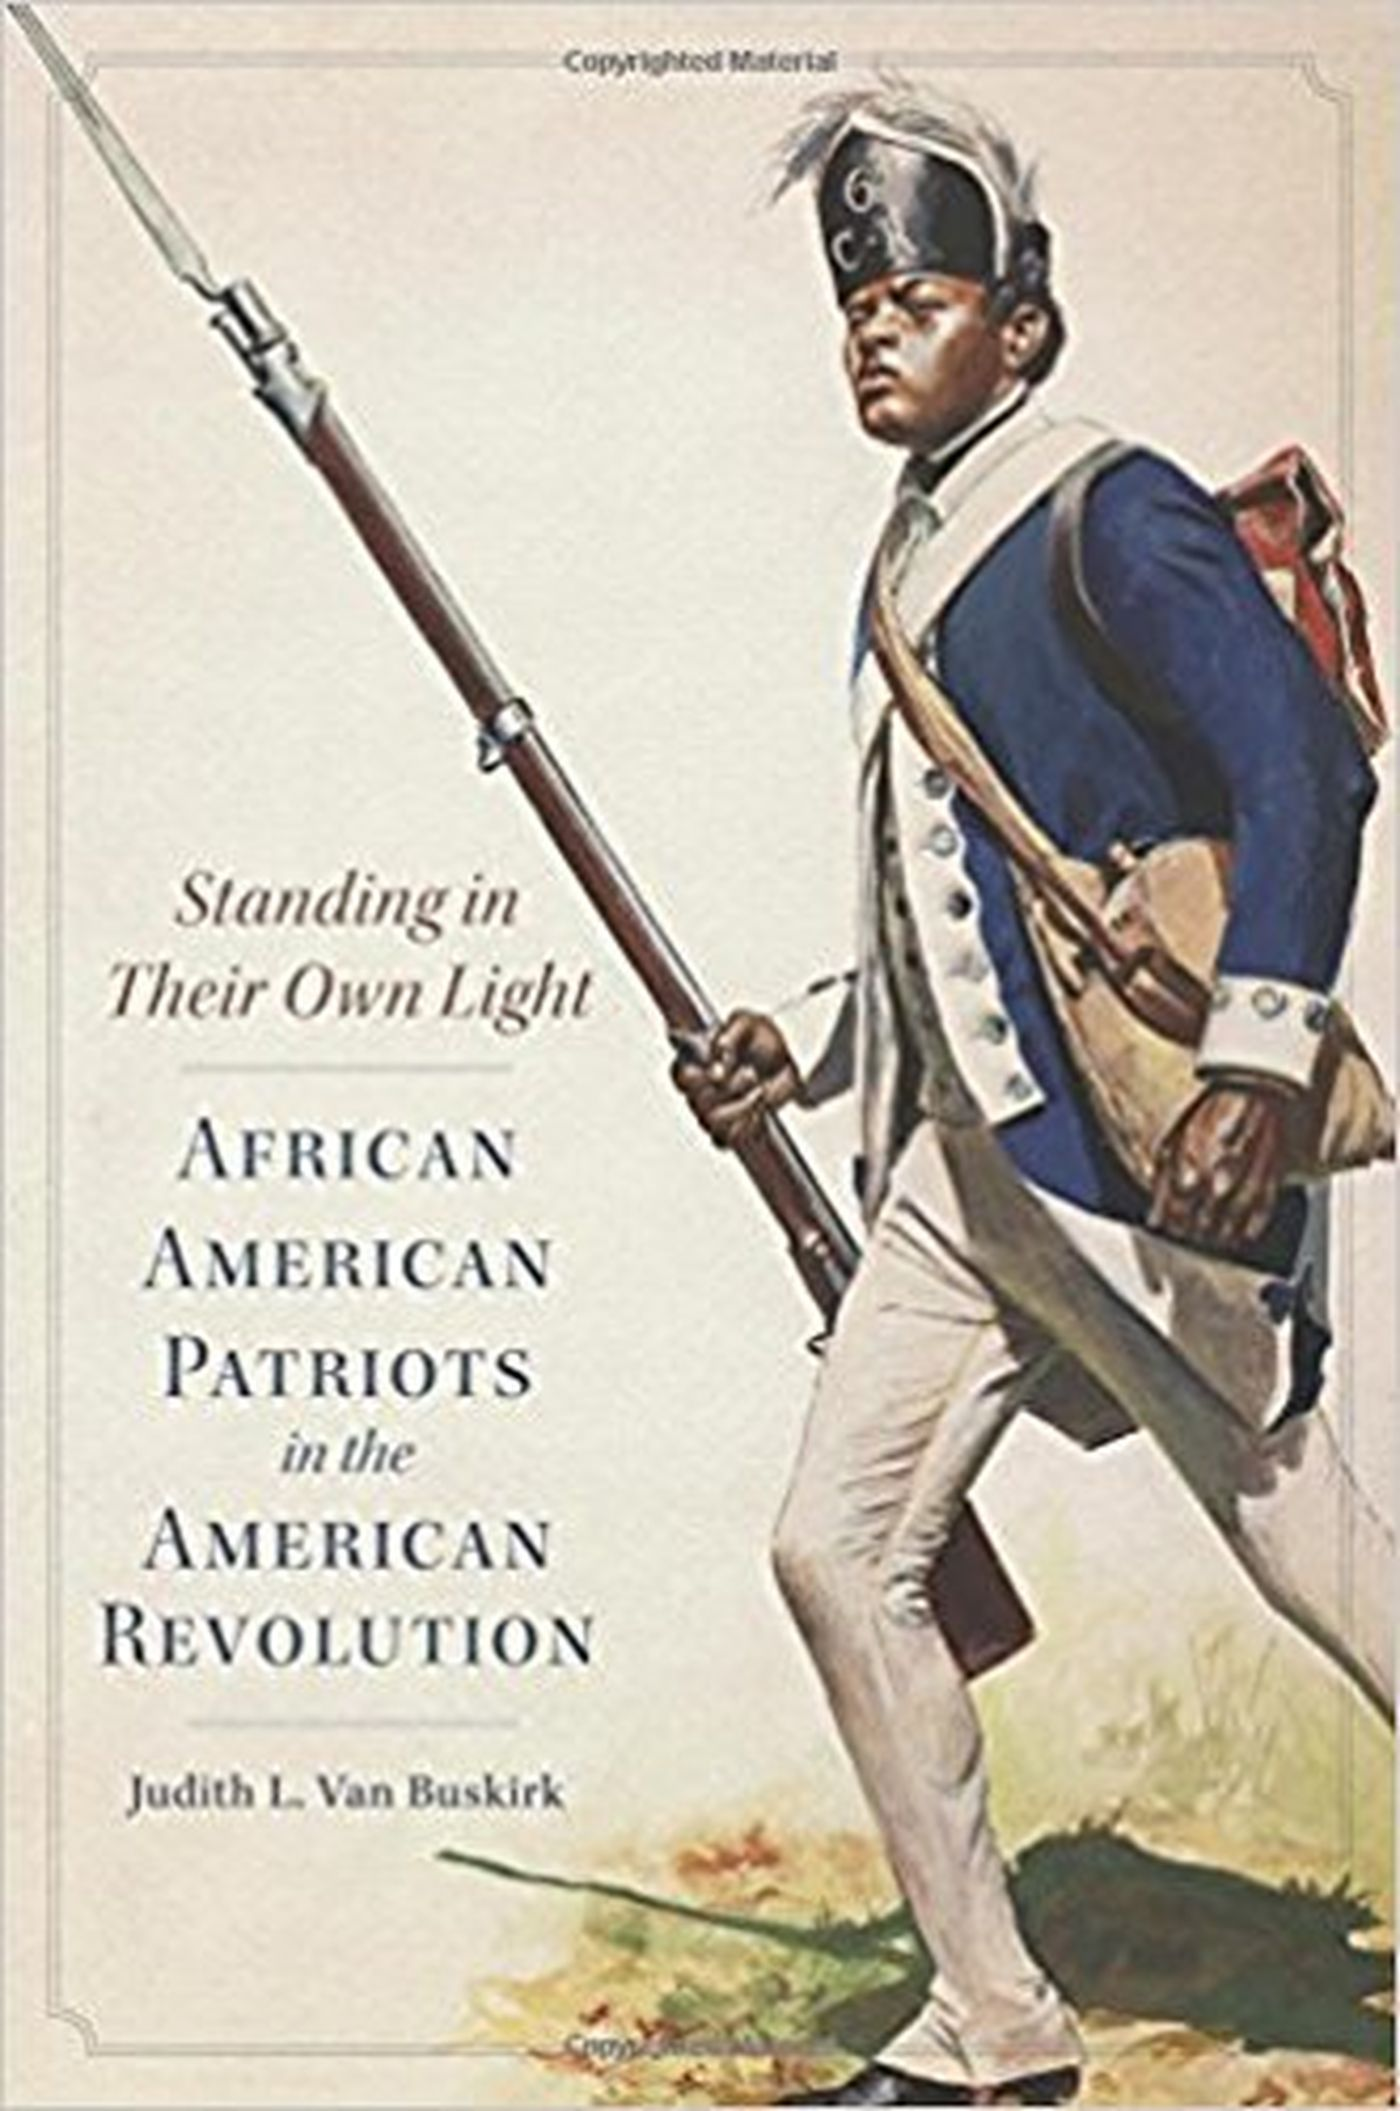 Image Result For African Americans In The Revolutionary War American Patriot American Revolution American War Of Independence